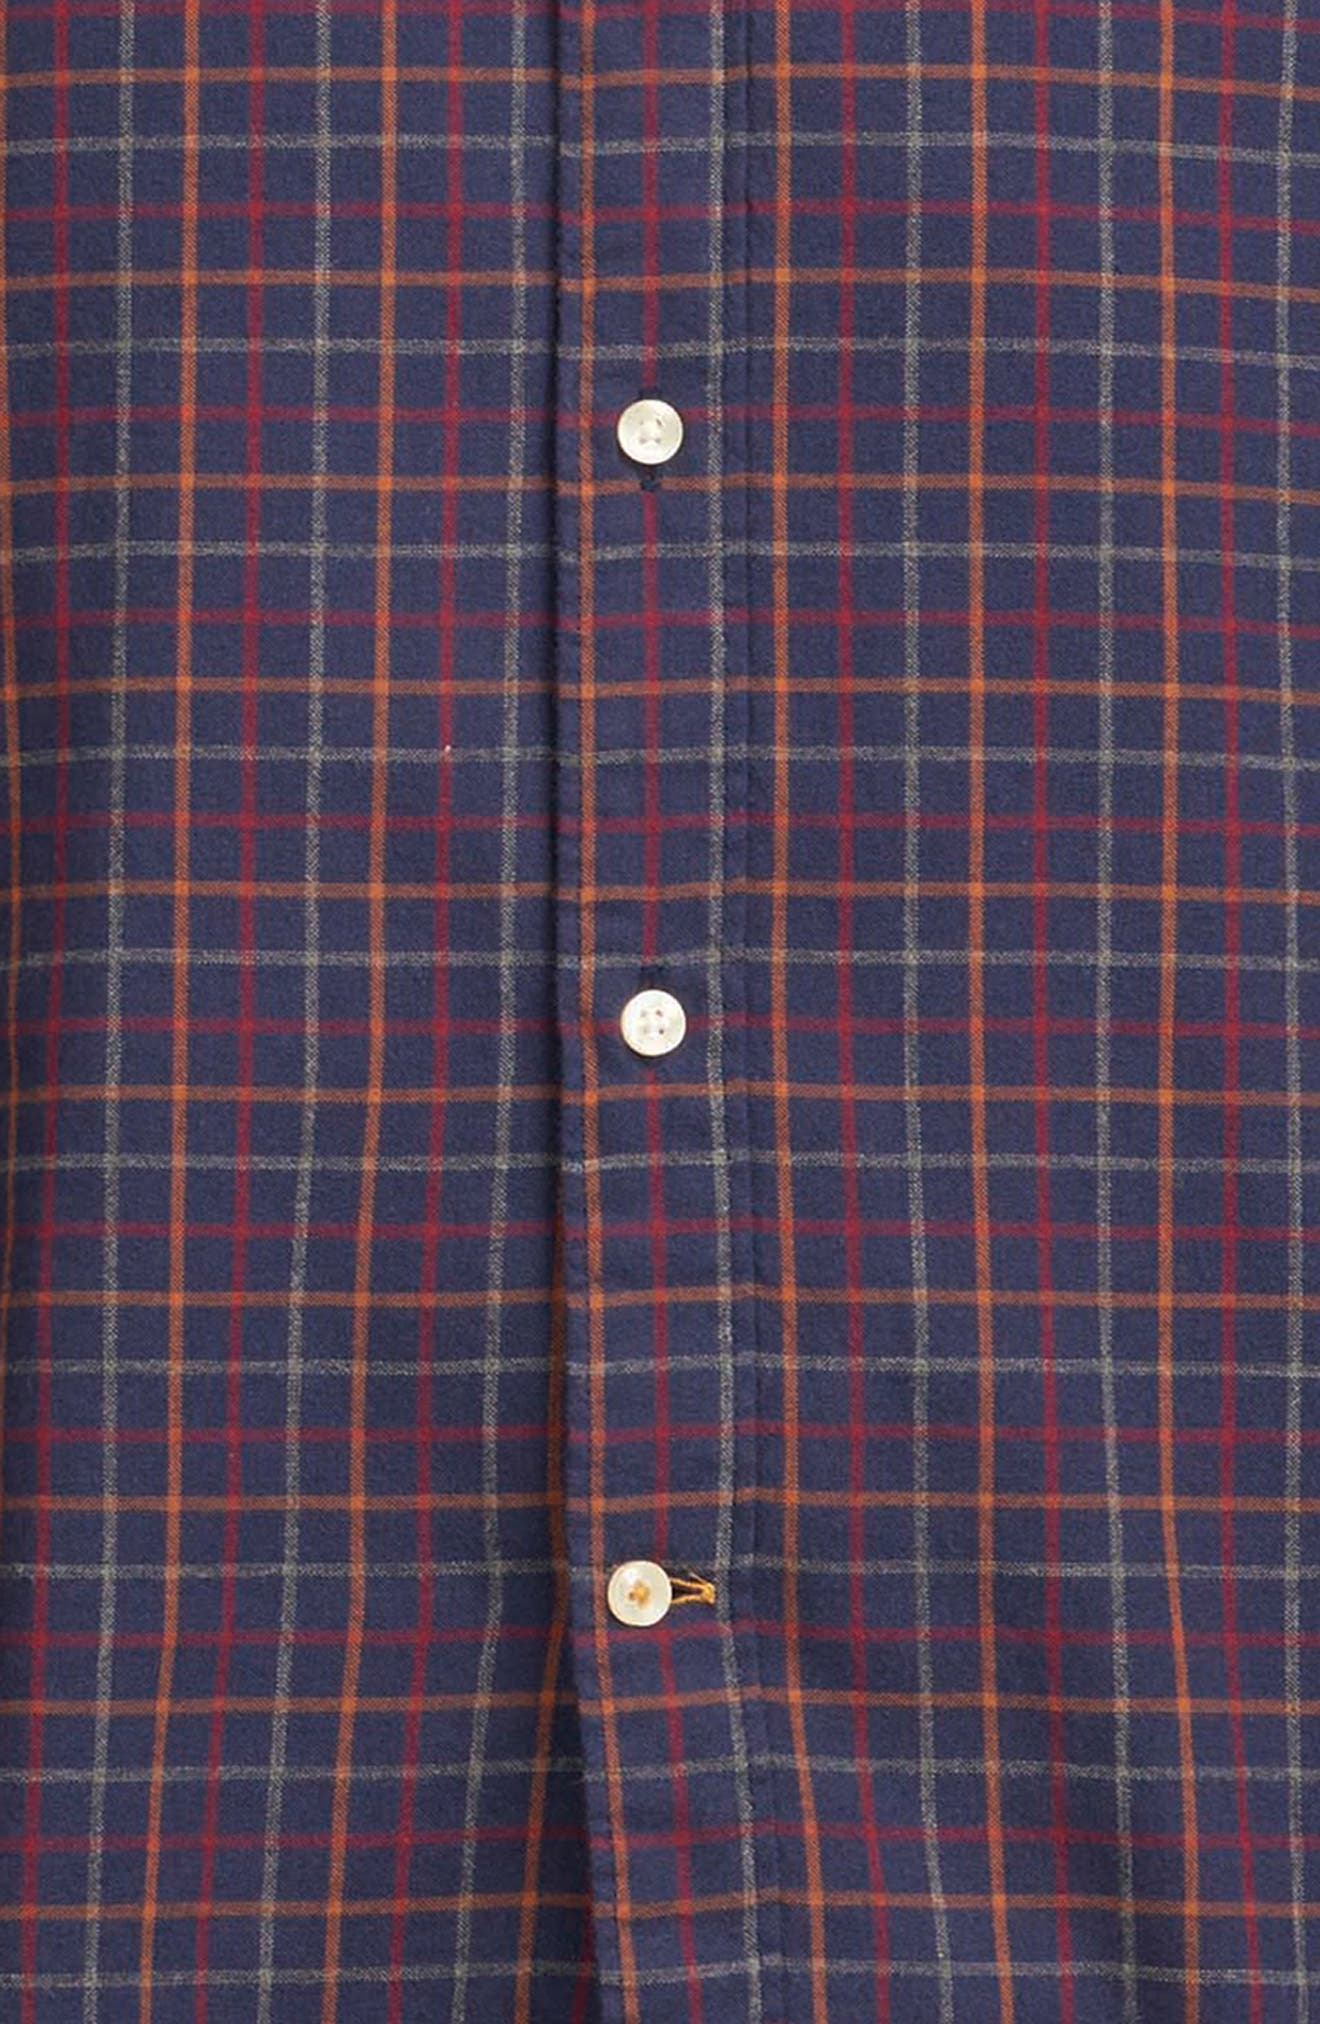 Endsleigh Tattersall Cotton Flannel Shirt,                             Alternate thumbnail 6, color,                             410